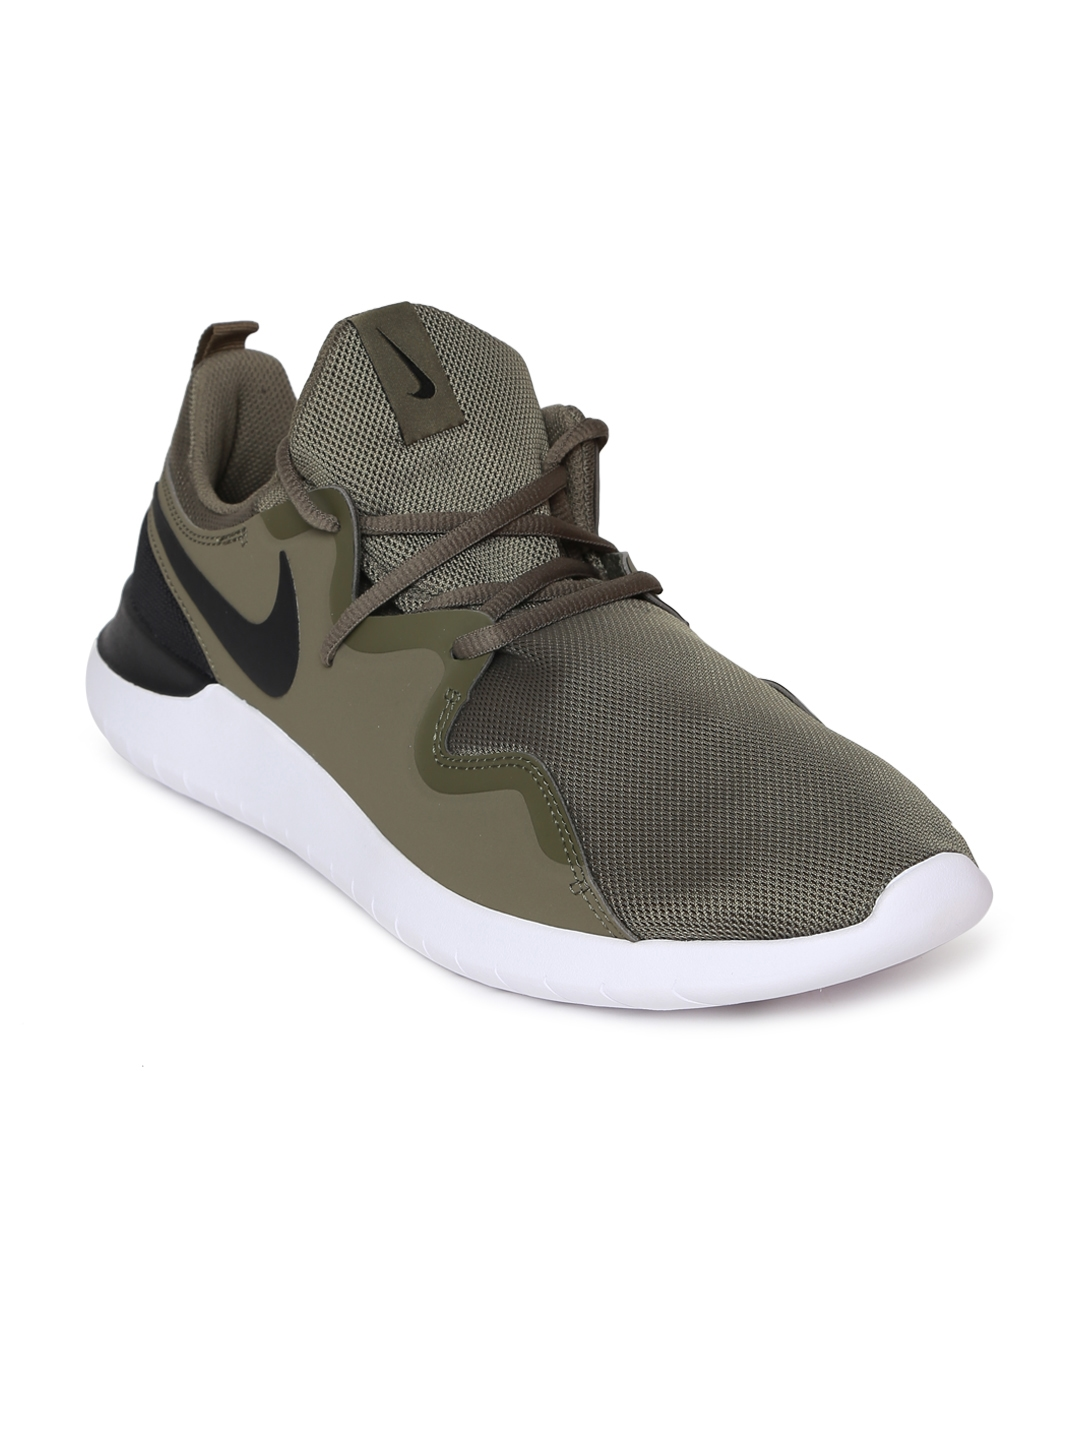 ab17f8067 Buy Nike Men Olive Green Tessen Running Shoes - Sports Shoes for Men ...